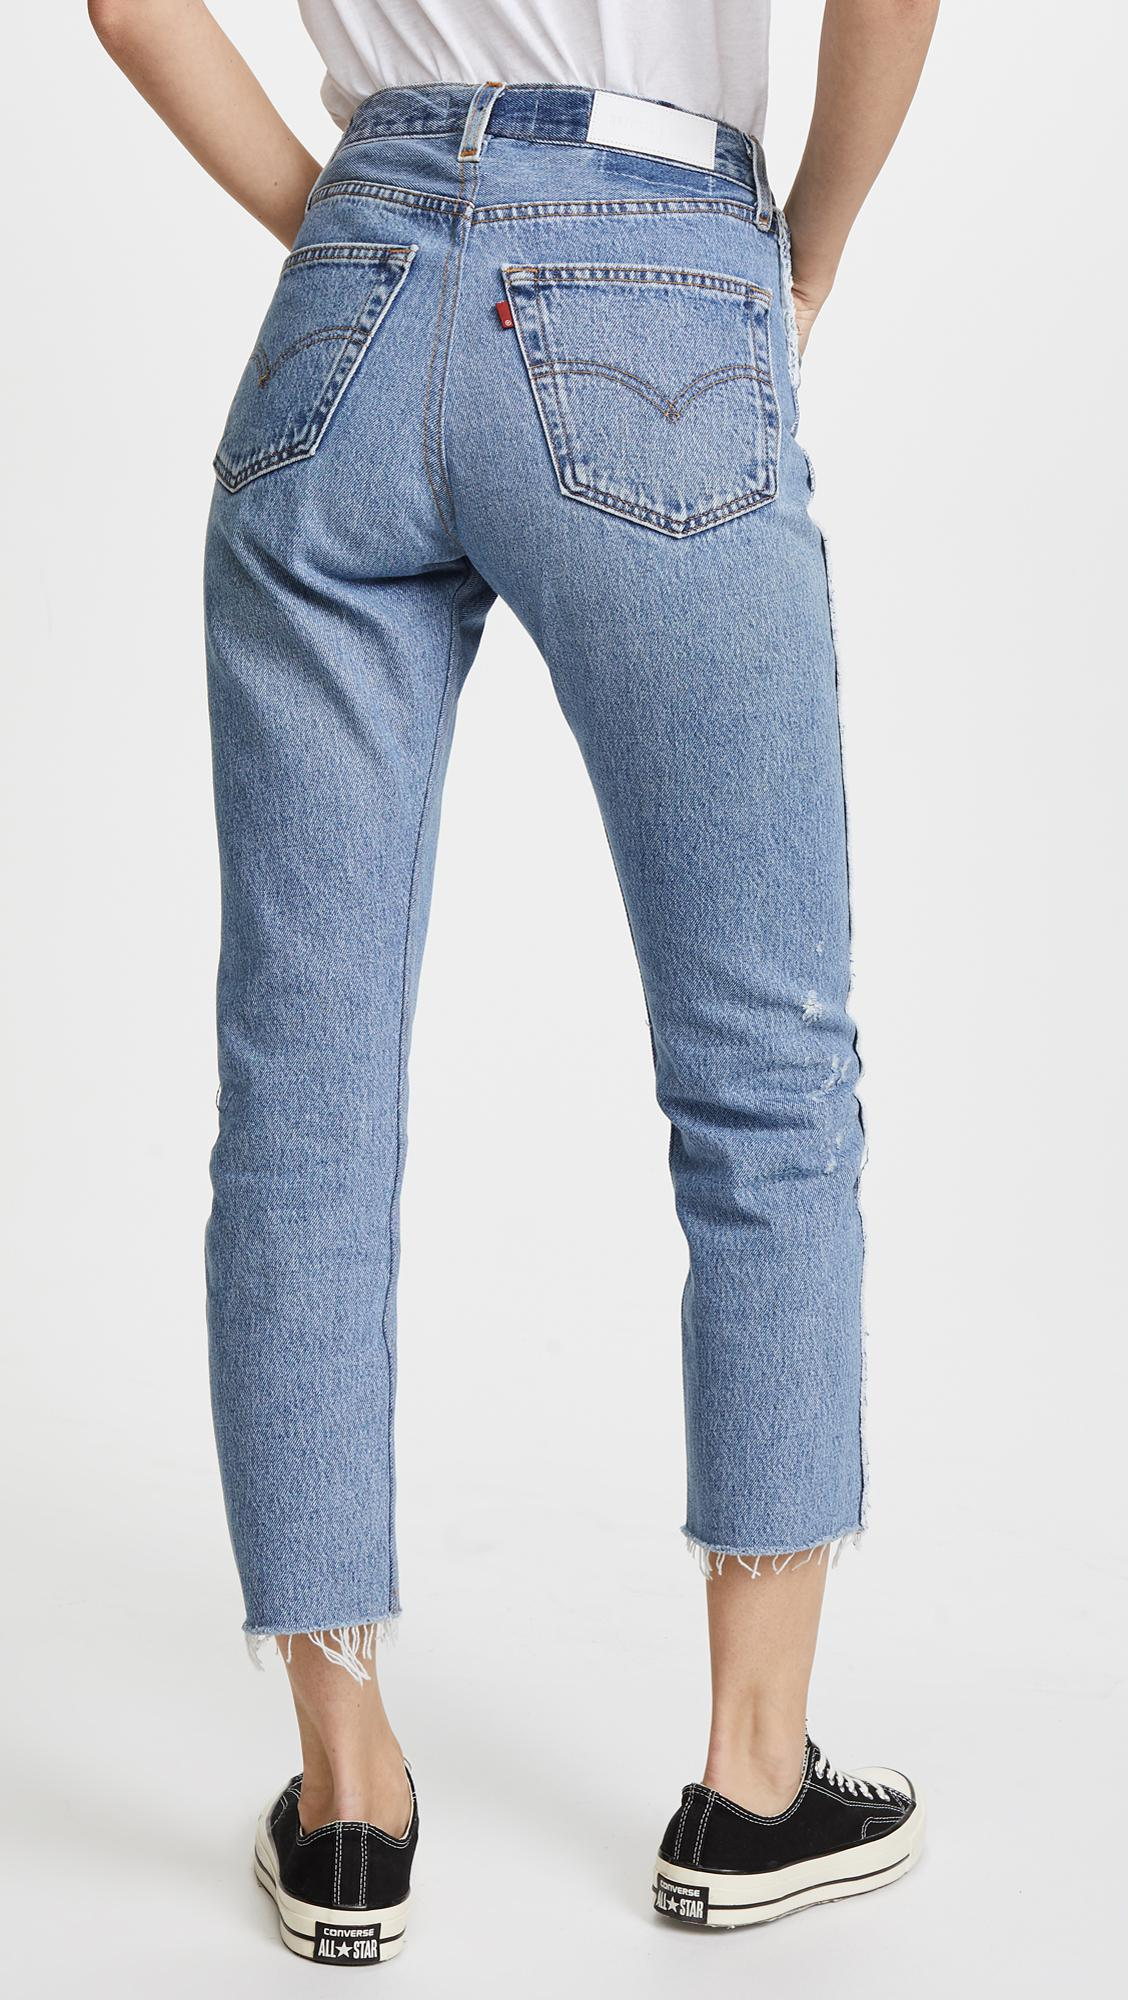 f808dd1dd2de1 Lyst - RE DONE X Levi s High Rise Relaxed Zip Crop Jeans in Blue